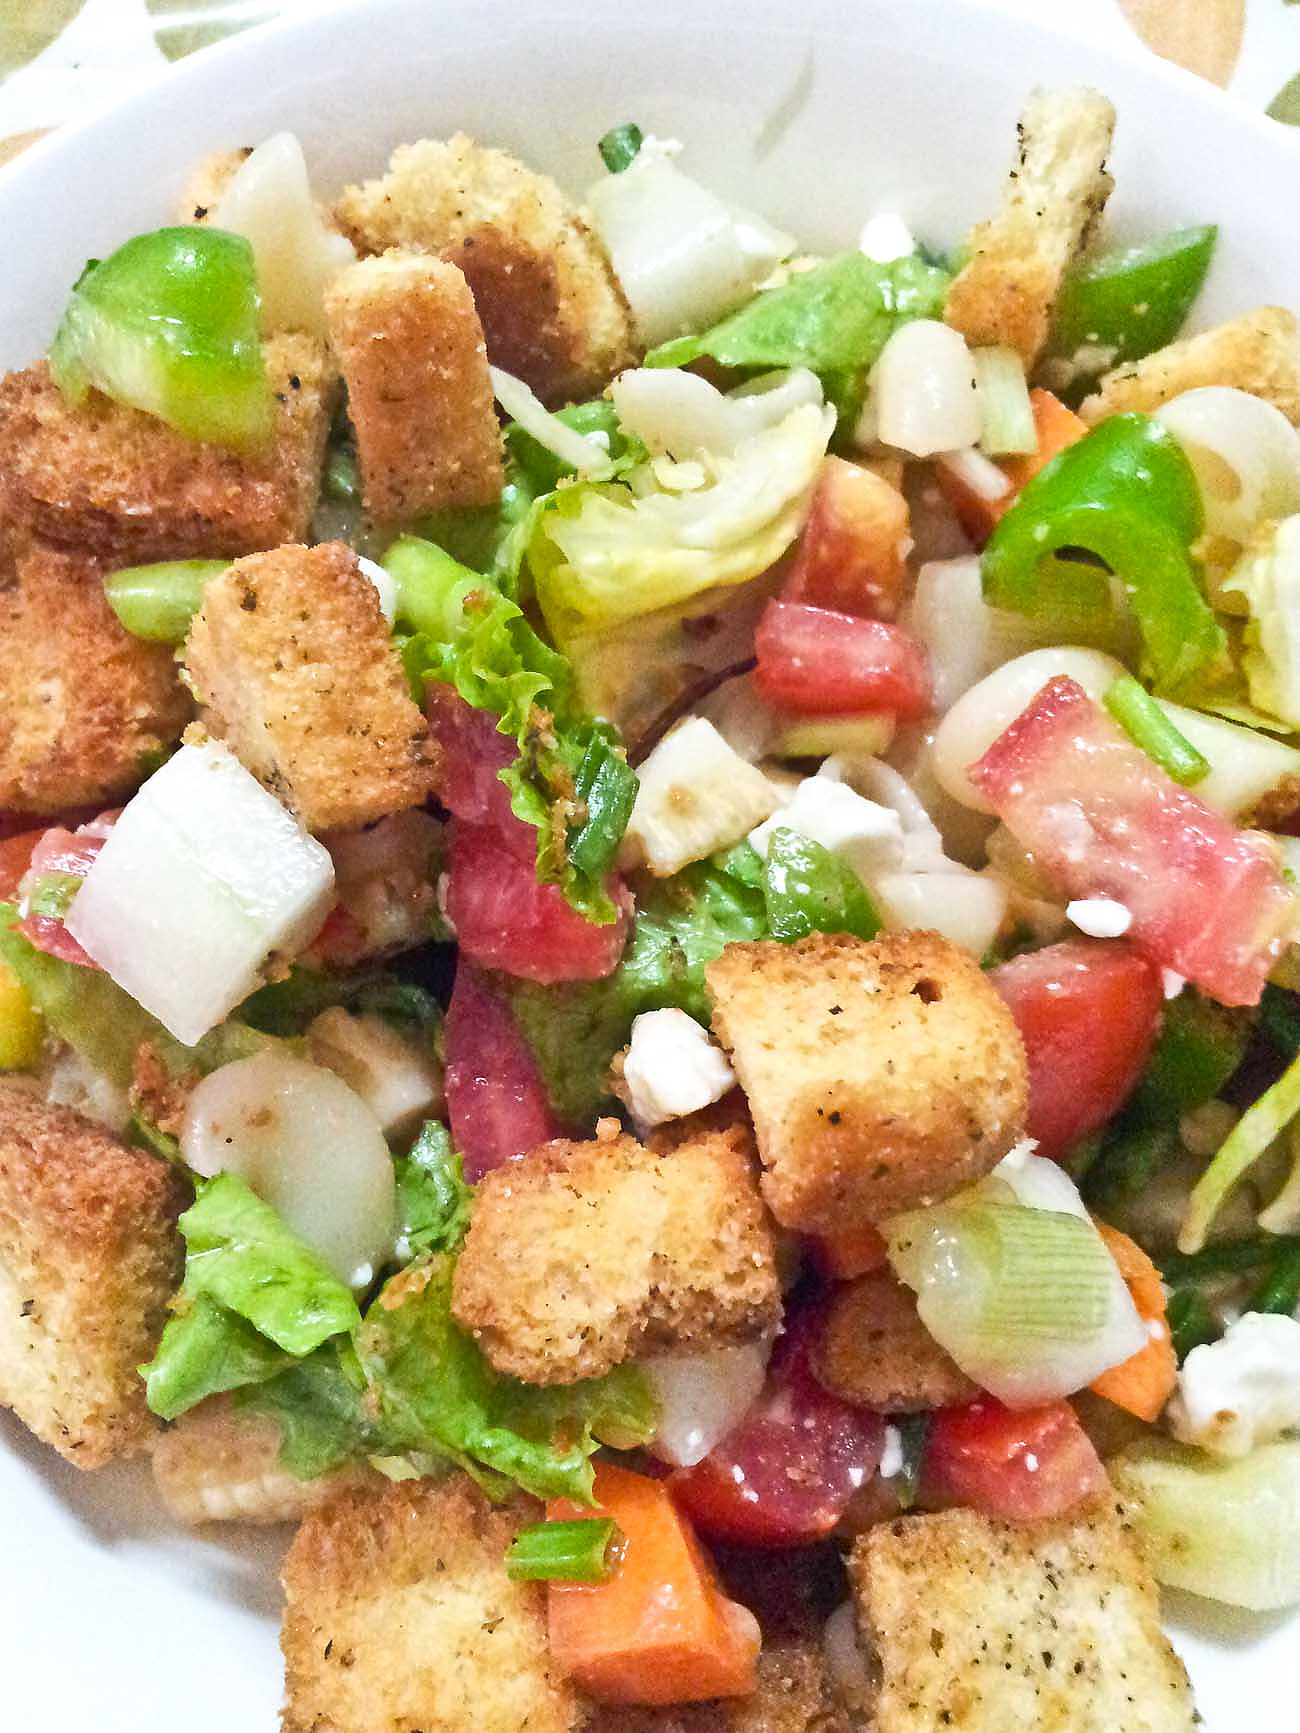 Pasta Salad Recipe with Summer Vegetable Lettuce & Croutons